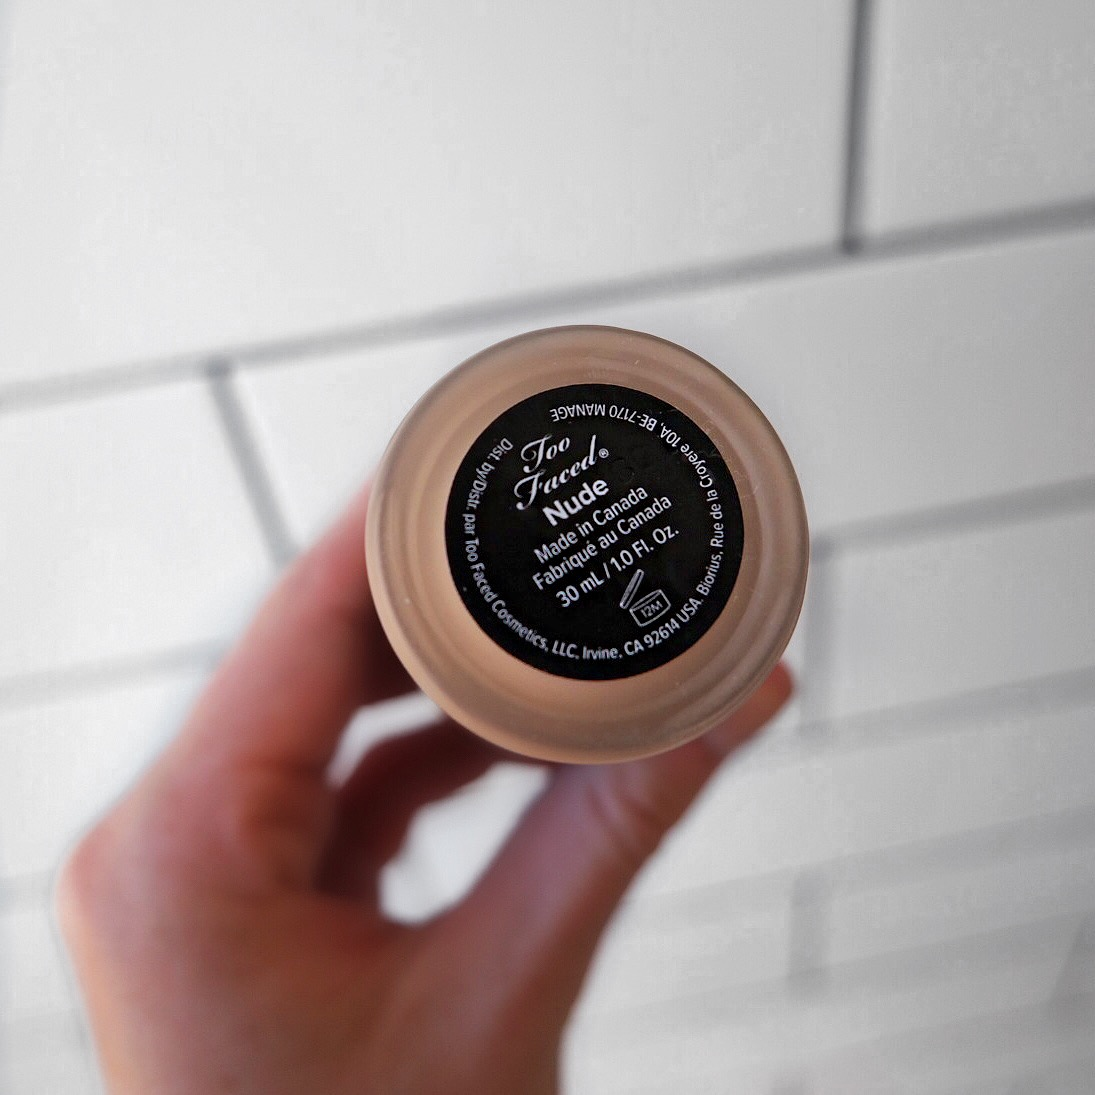 Too Faced Born This Way Foundation Review | Izzy Wears Blog